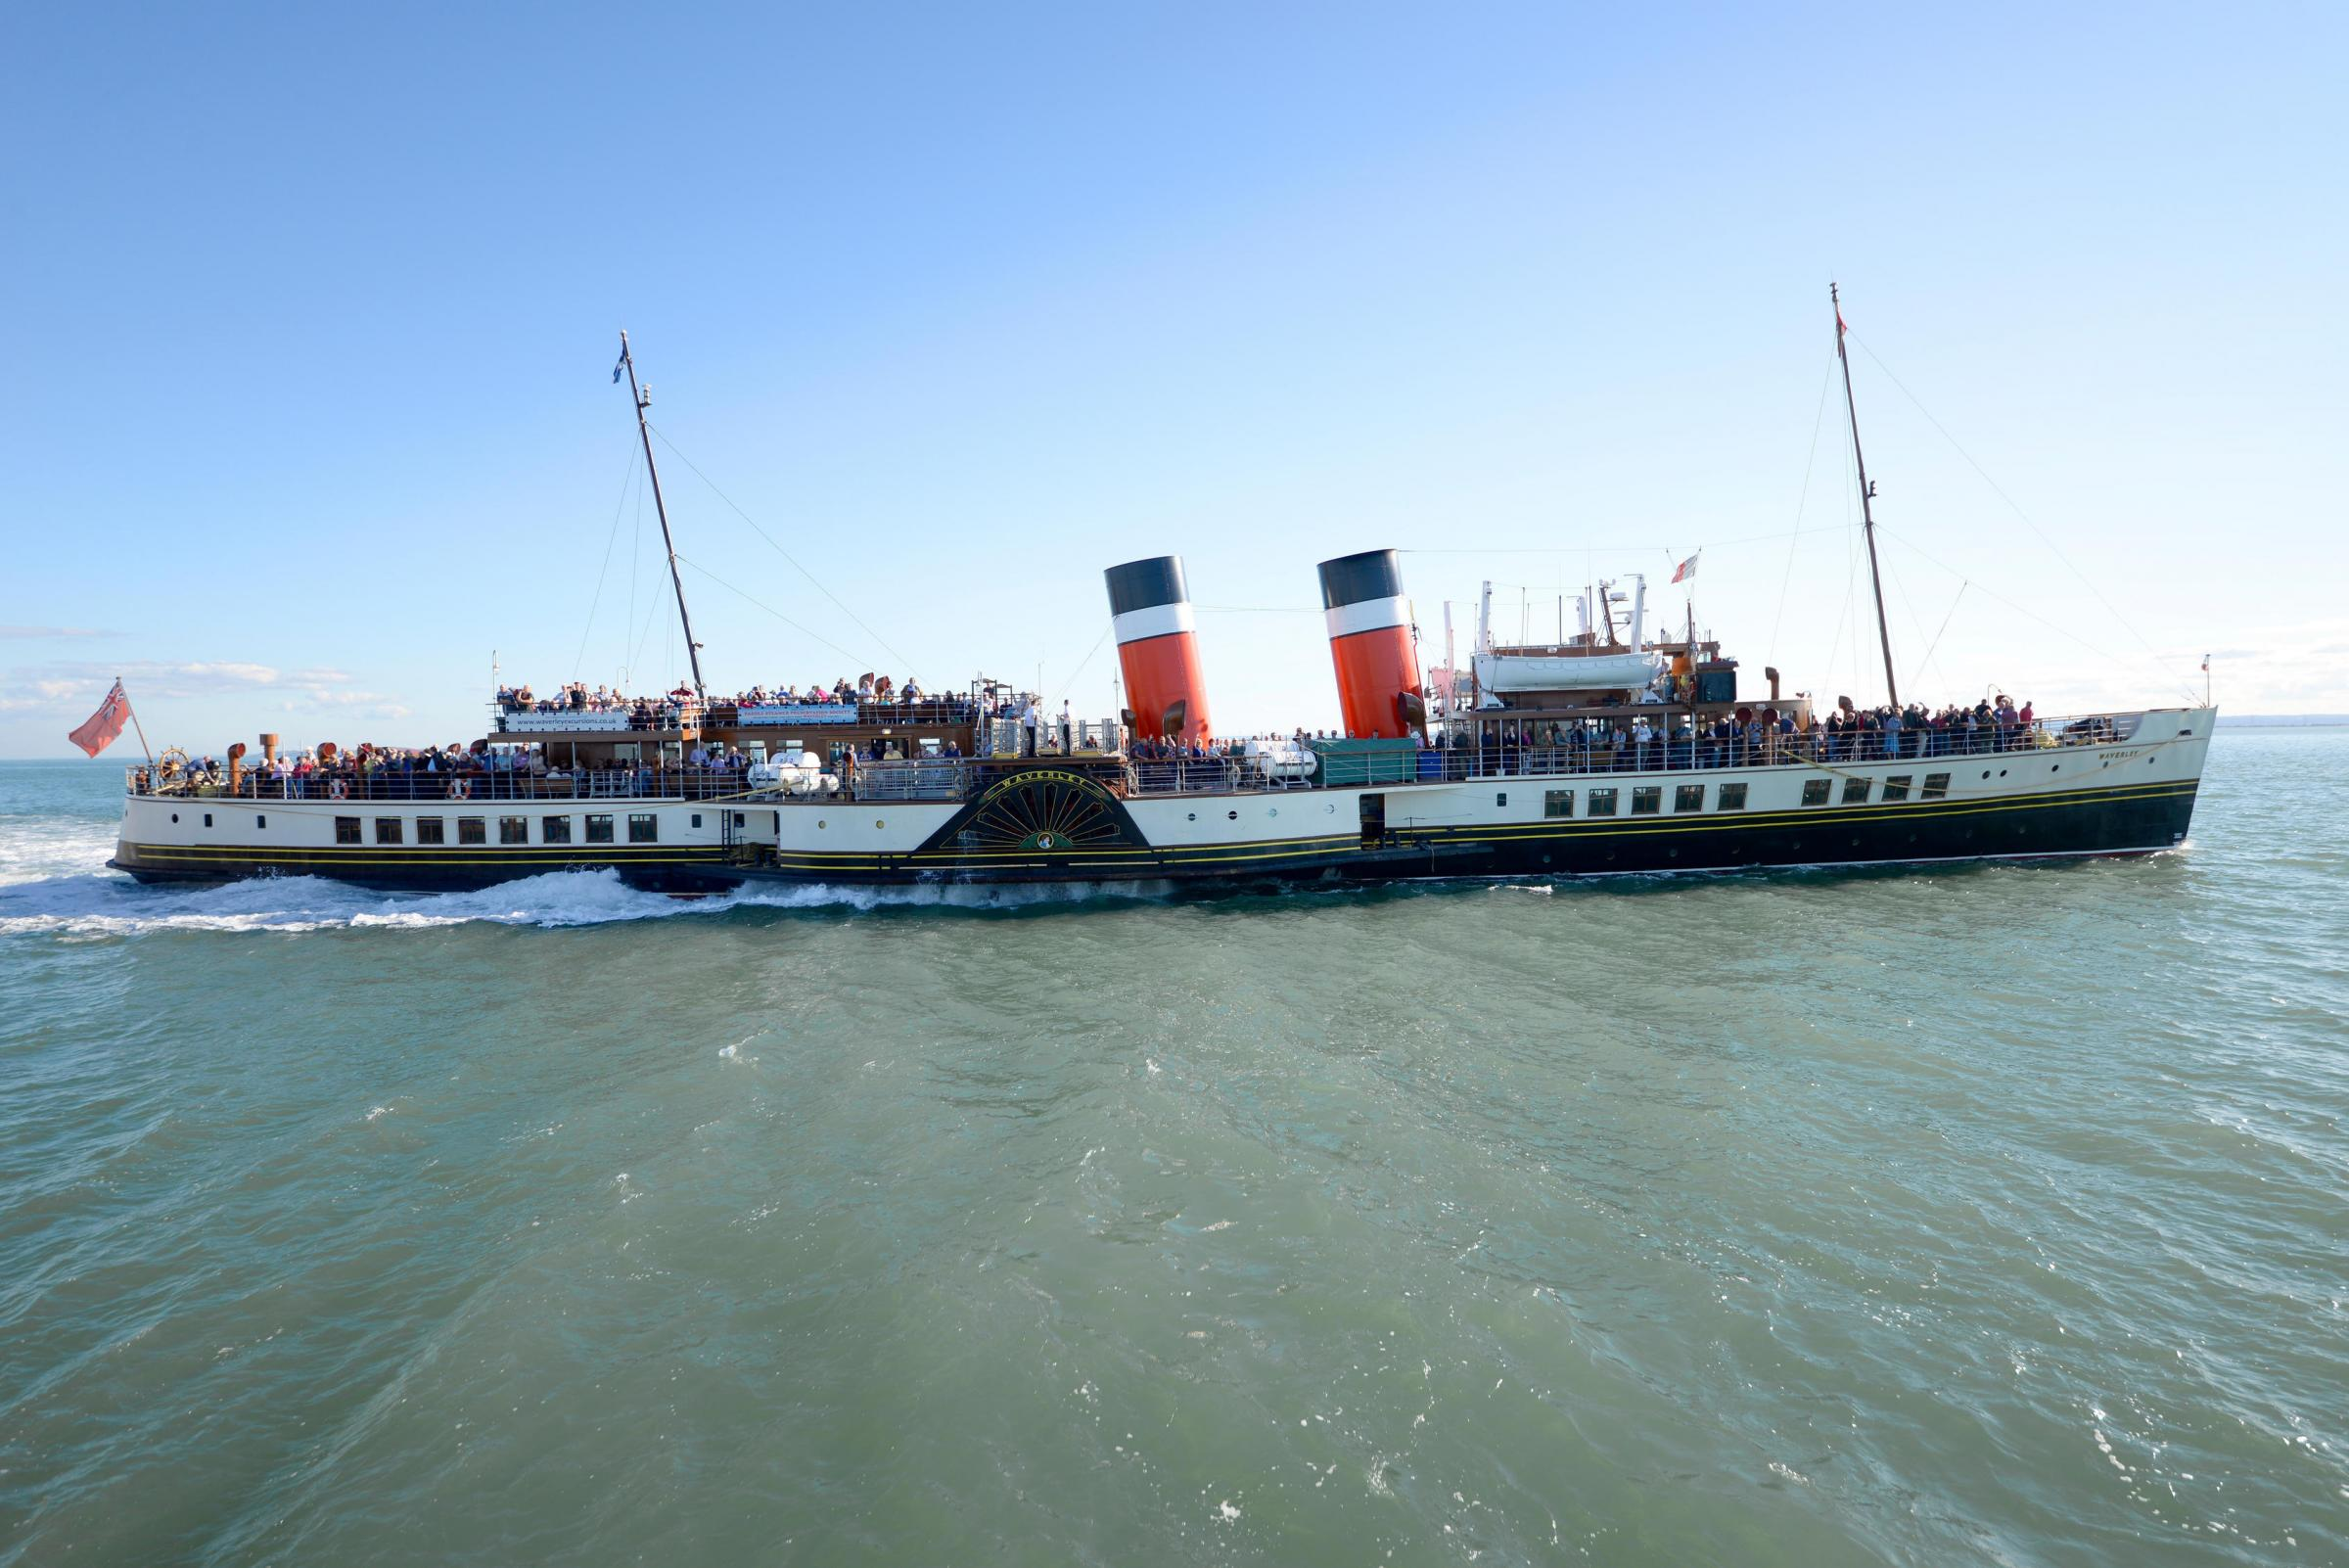 The PS Waverley is the last seagoing paddle steamer in the world